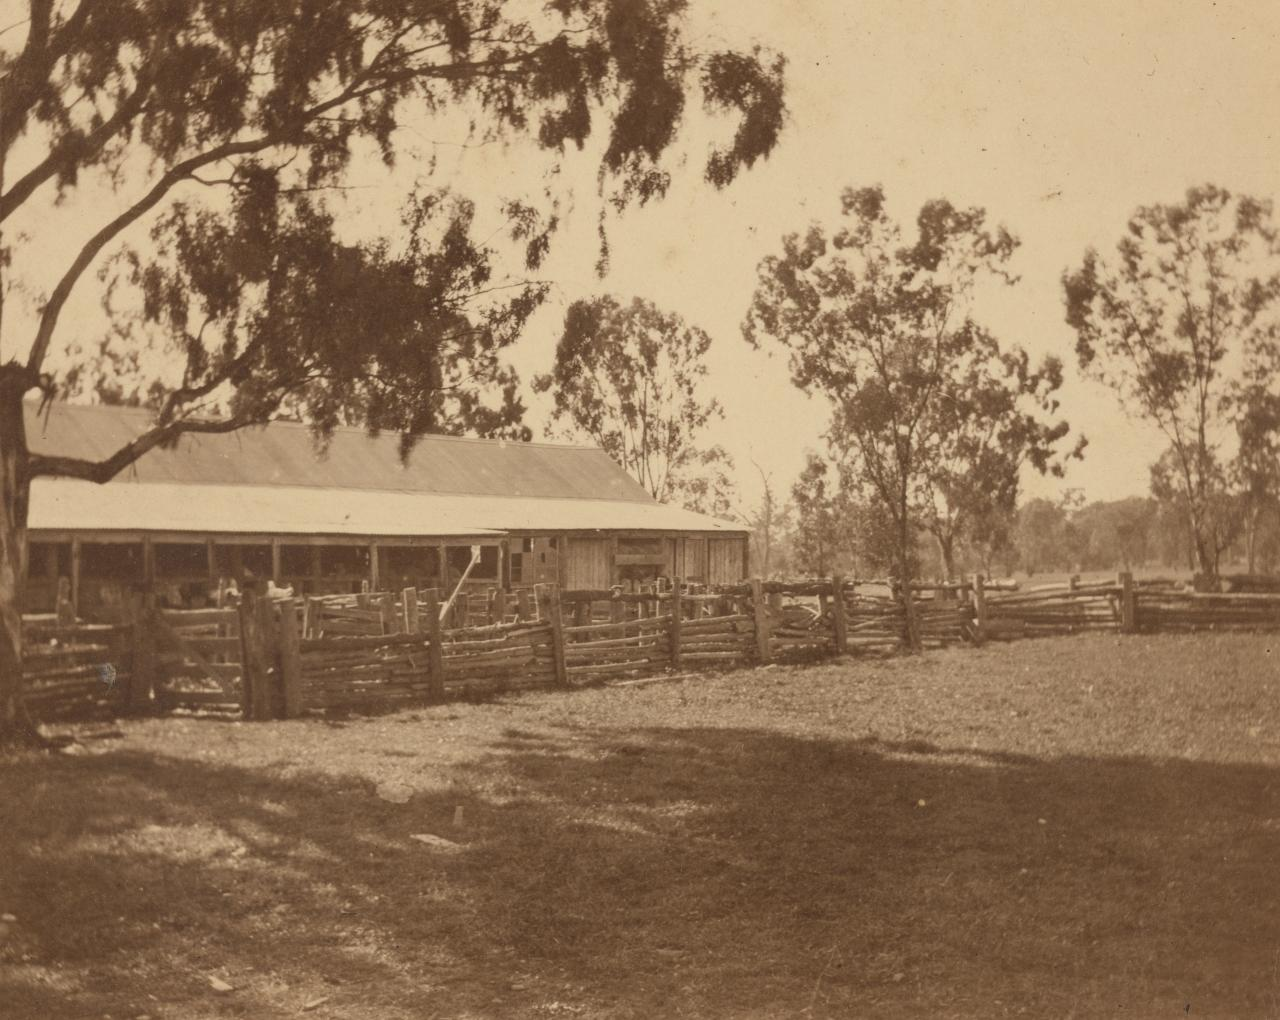 Brocklesby Shed, Corowa